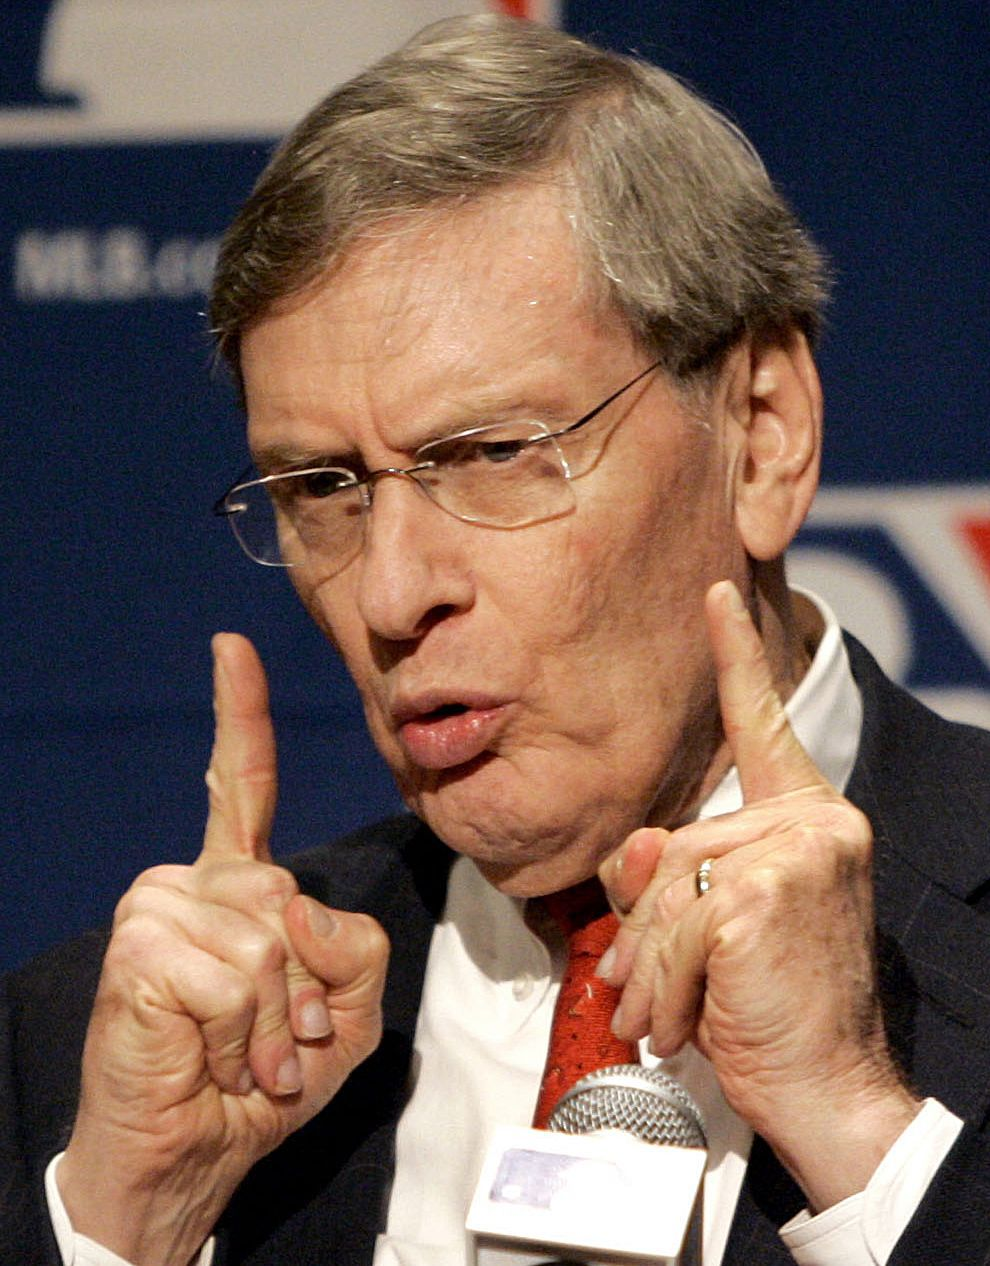 MLB comissioner Bud Selig says he will retire in January 2015